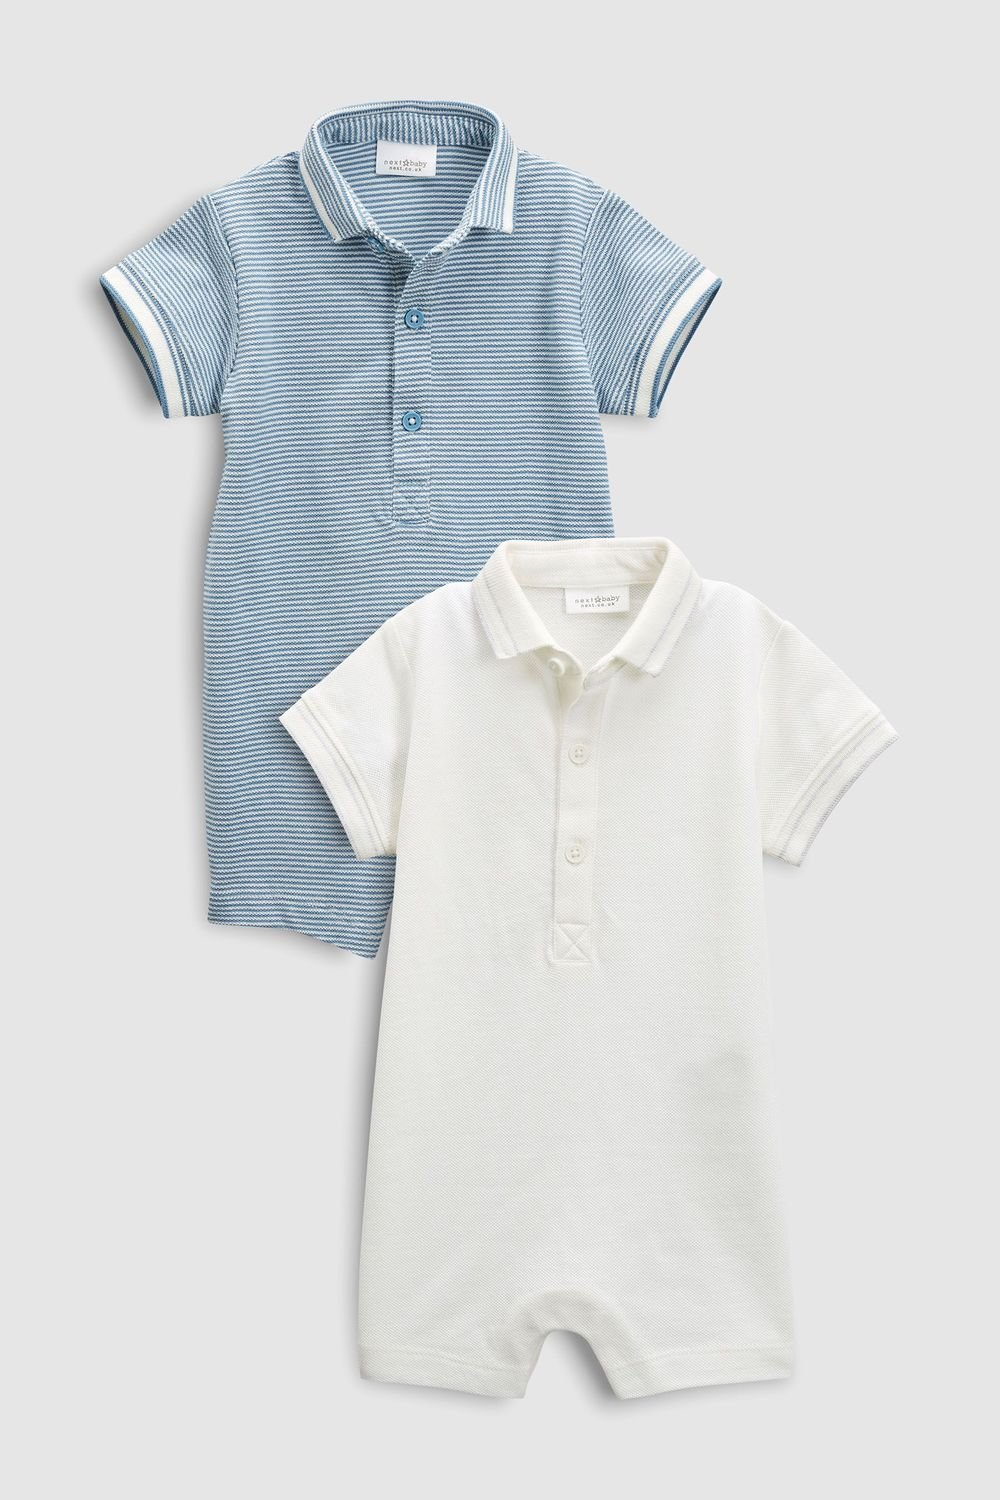 871fb2d24 Next Poloshirt Rompers Two Pack (0mths-2yrs) Online